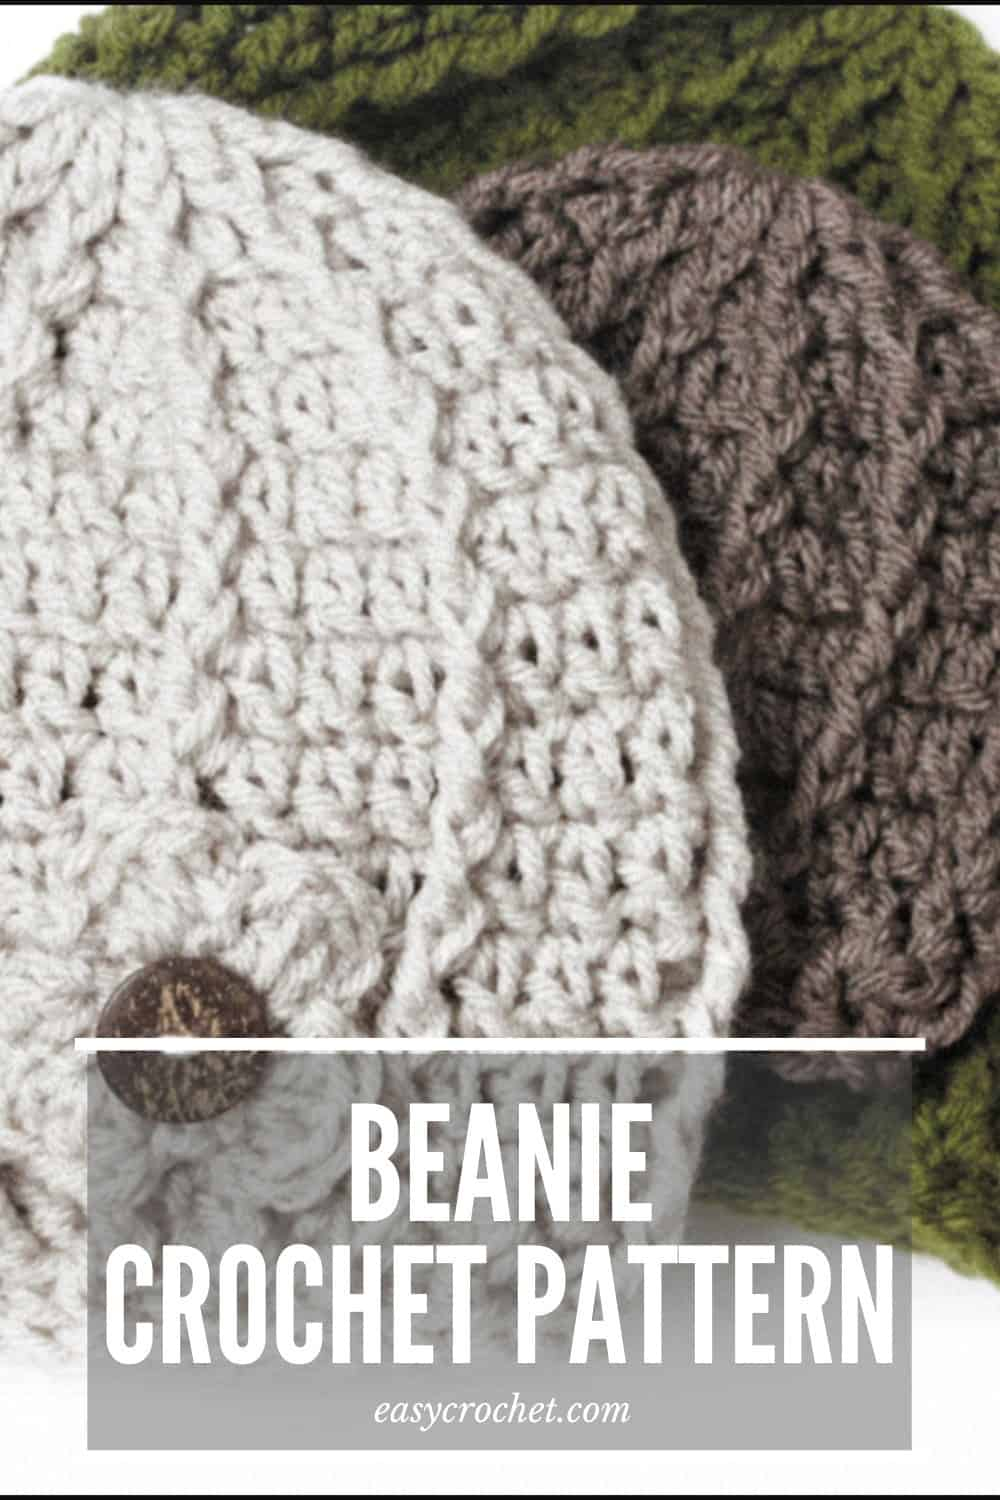 Make this unique beanie with our FREE crochet pattern! Uses easy to find yarn and is so fun to make. via @easycrochetcom